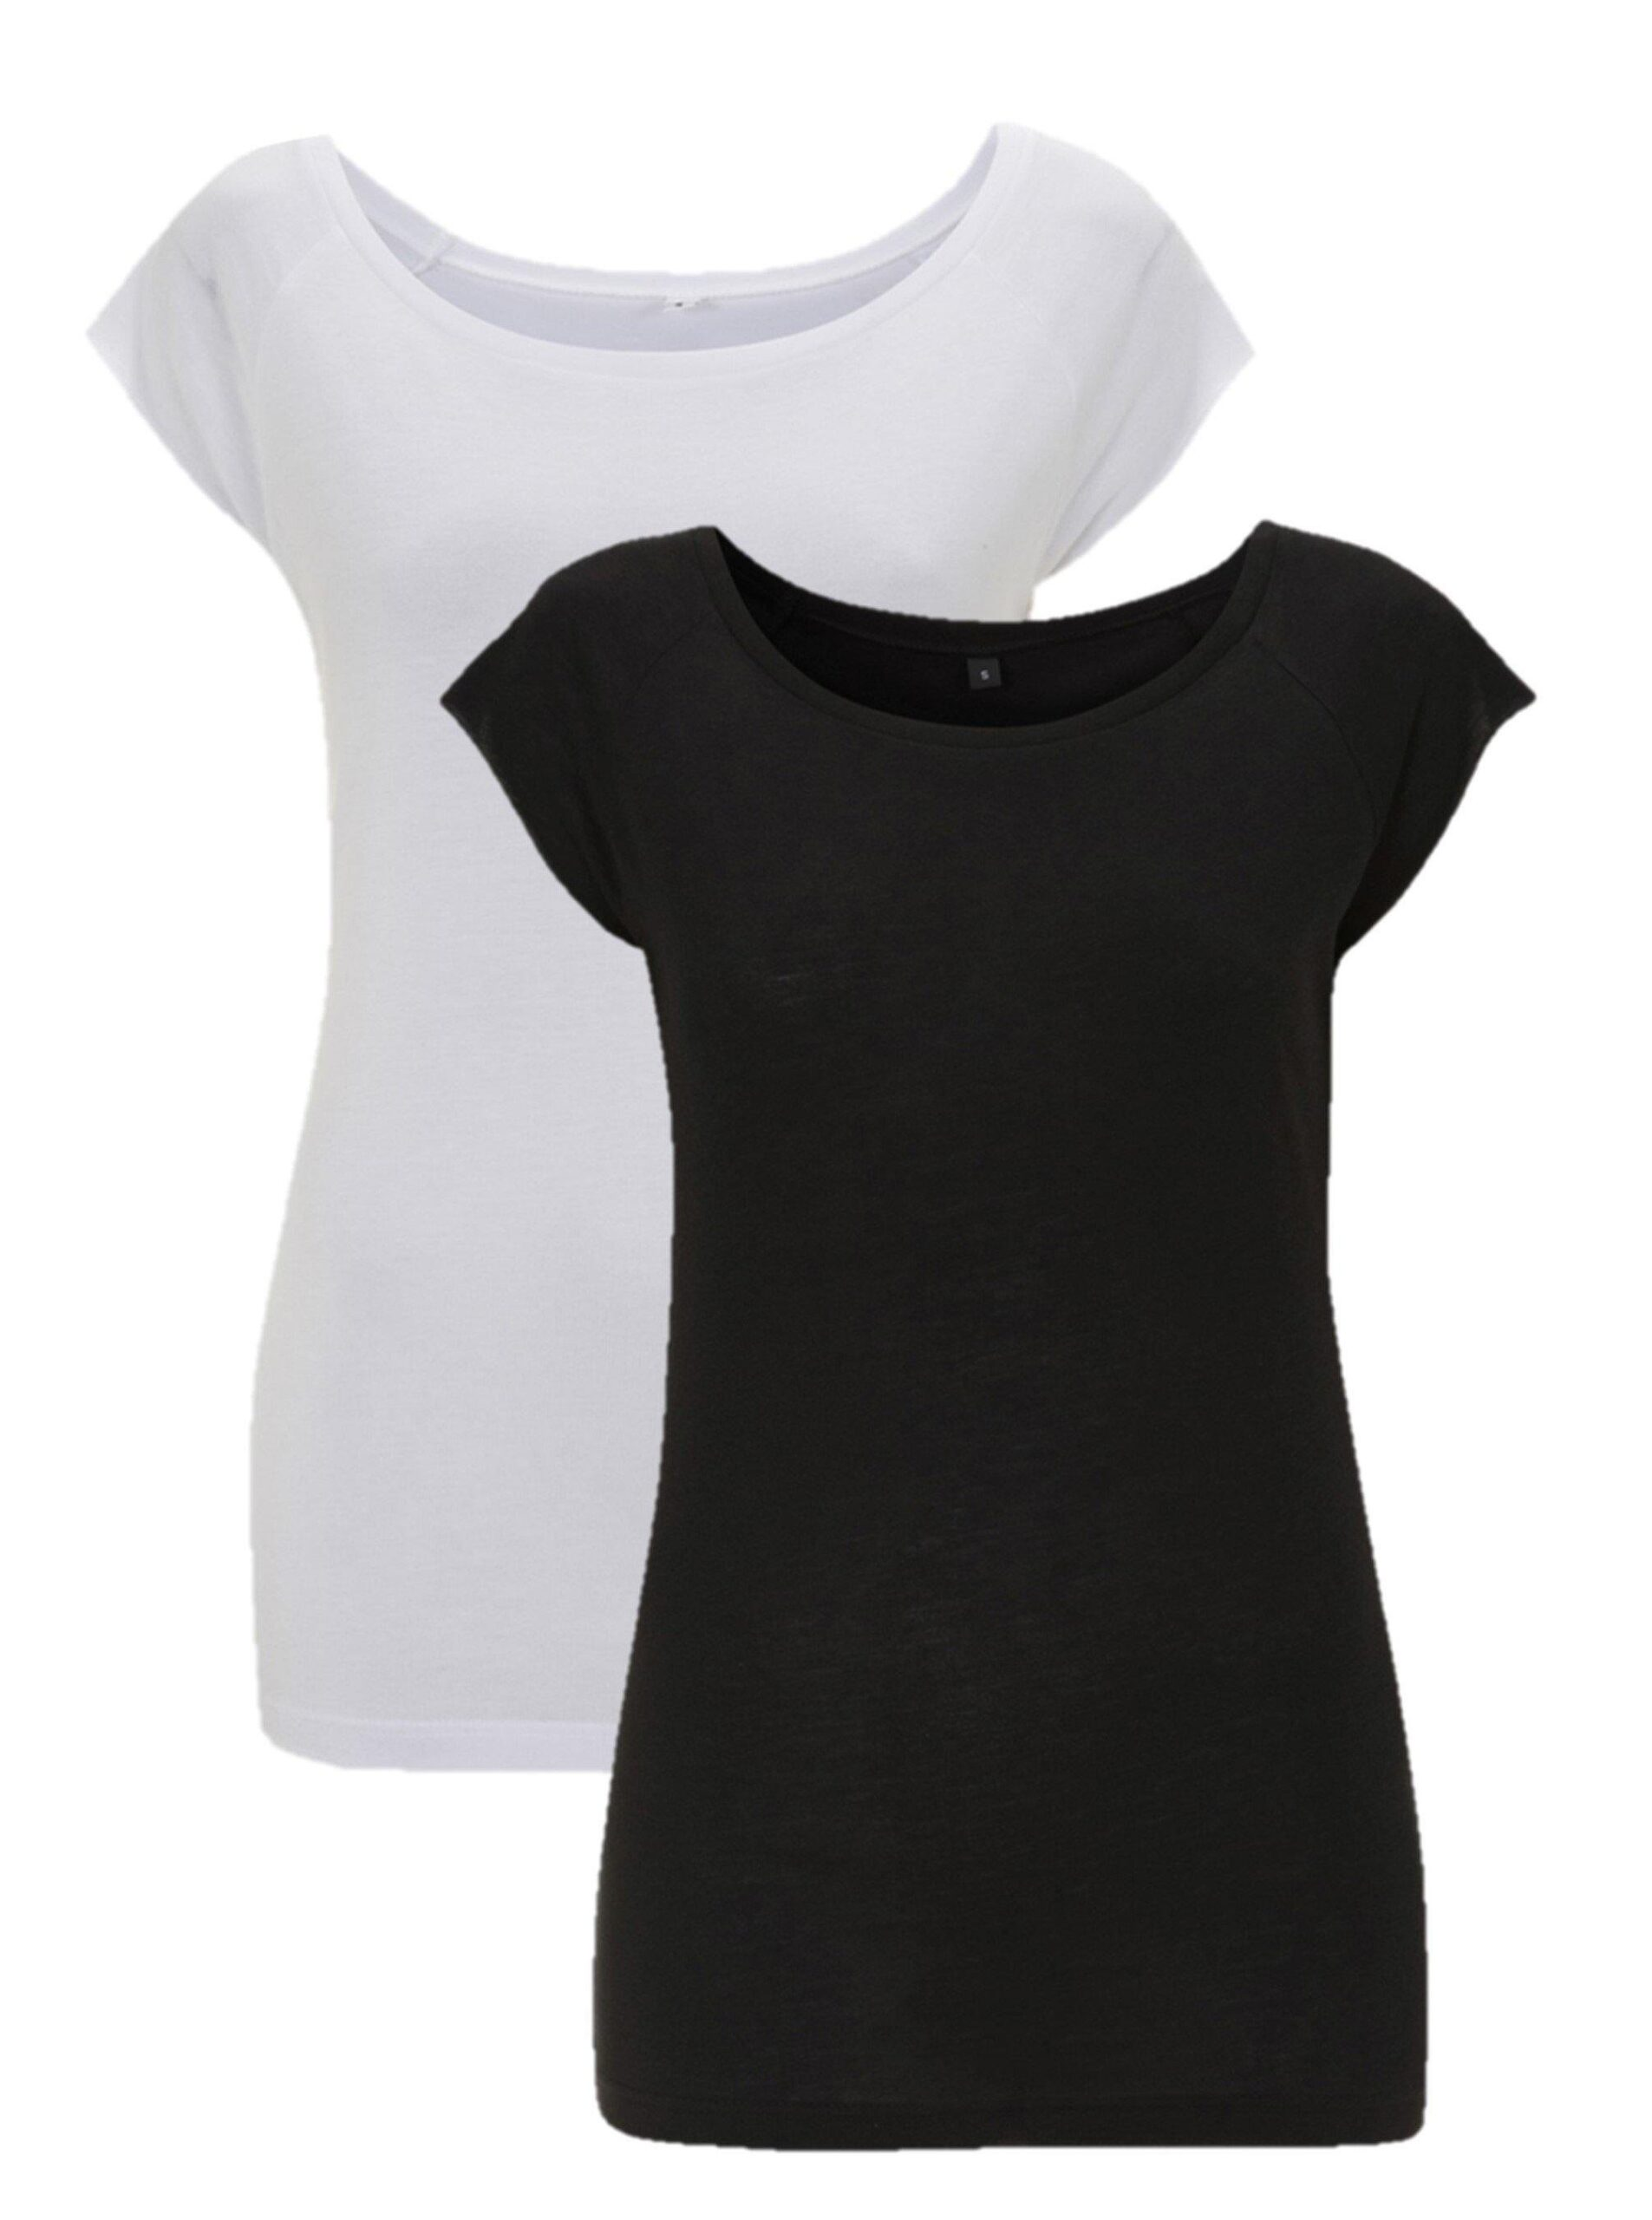 Bamboe t-shirt dames 2-pack mix wit